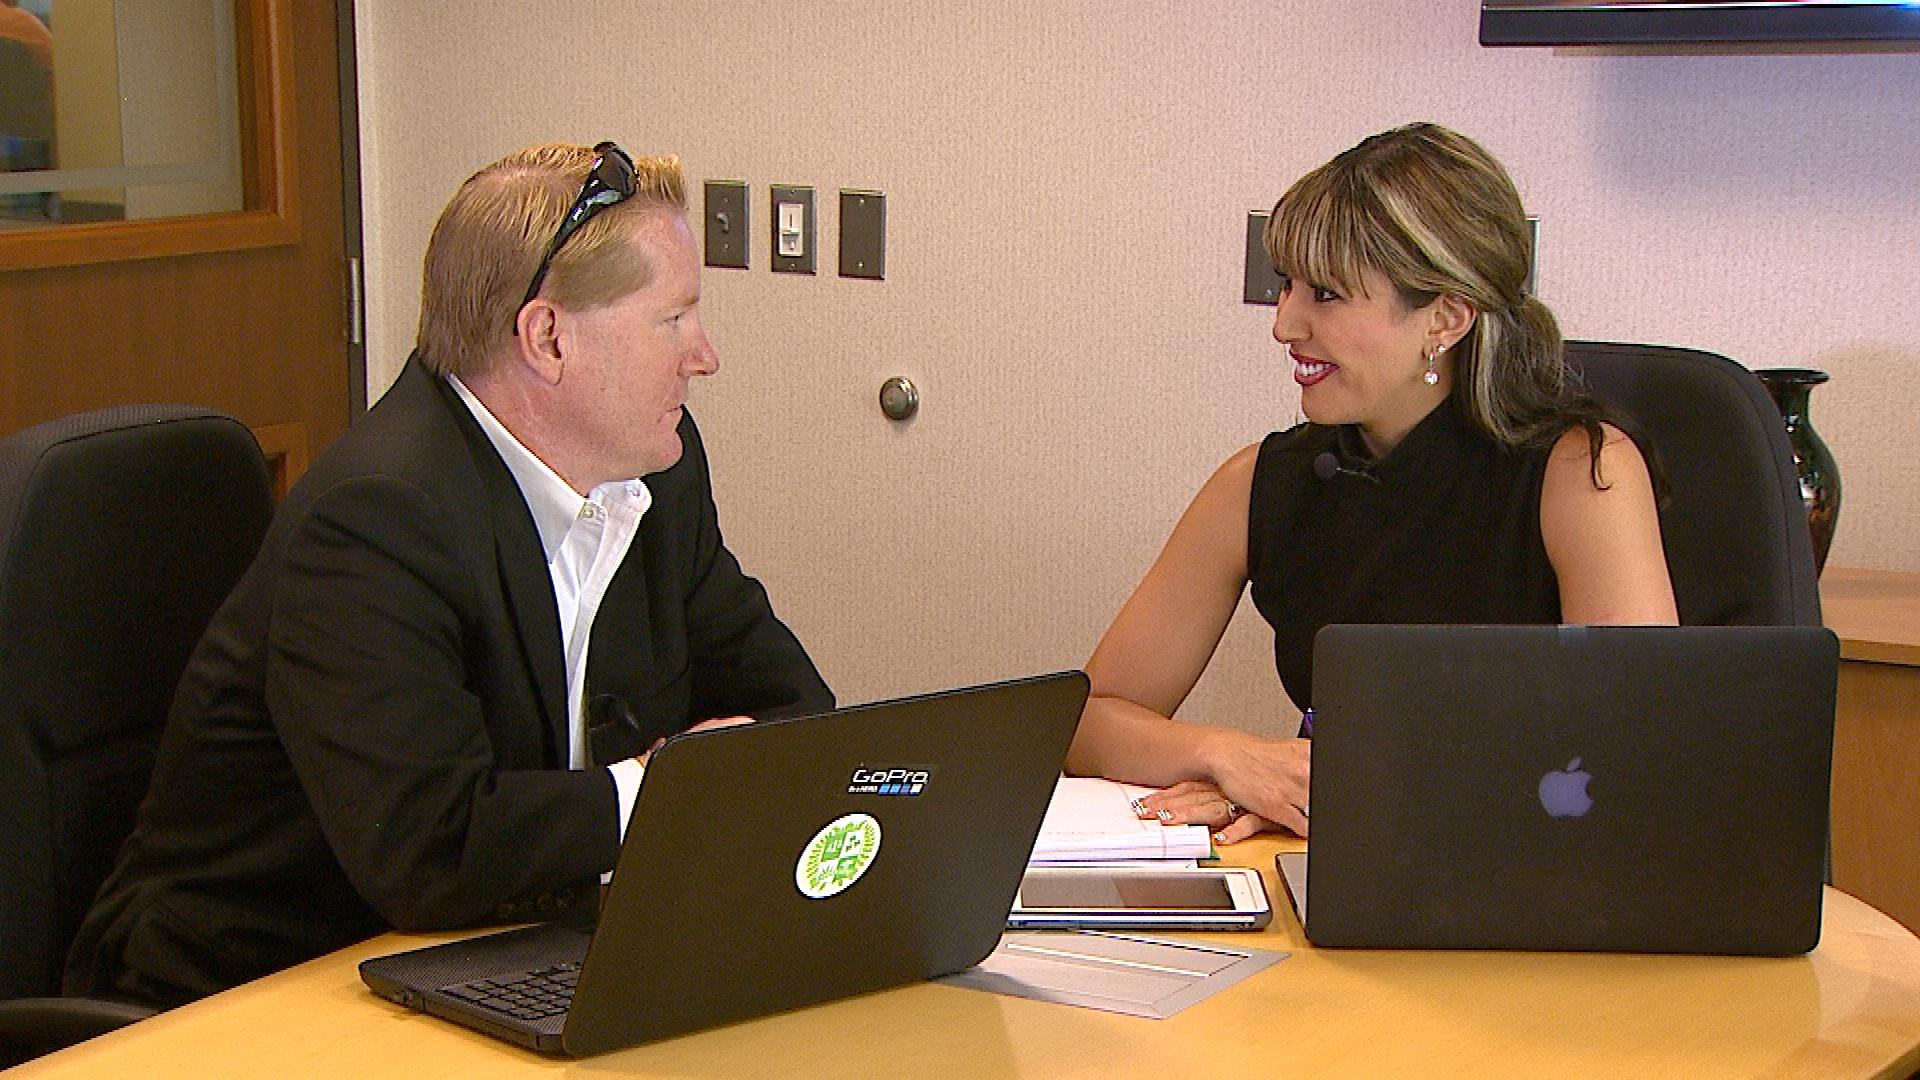 Chloe Villano, right, meets with a client. (credit: CBS)